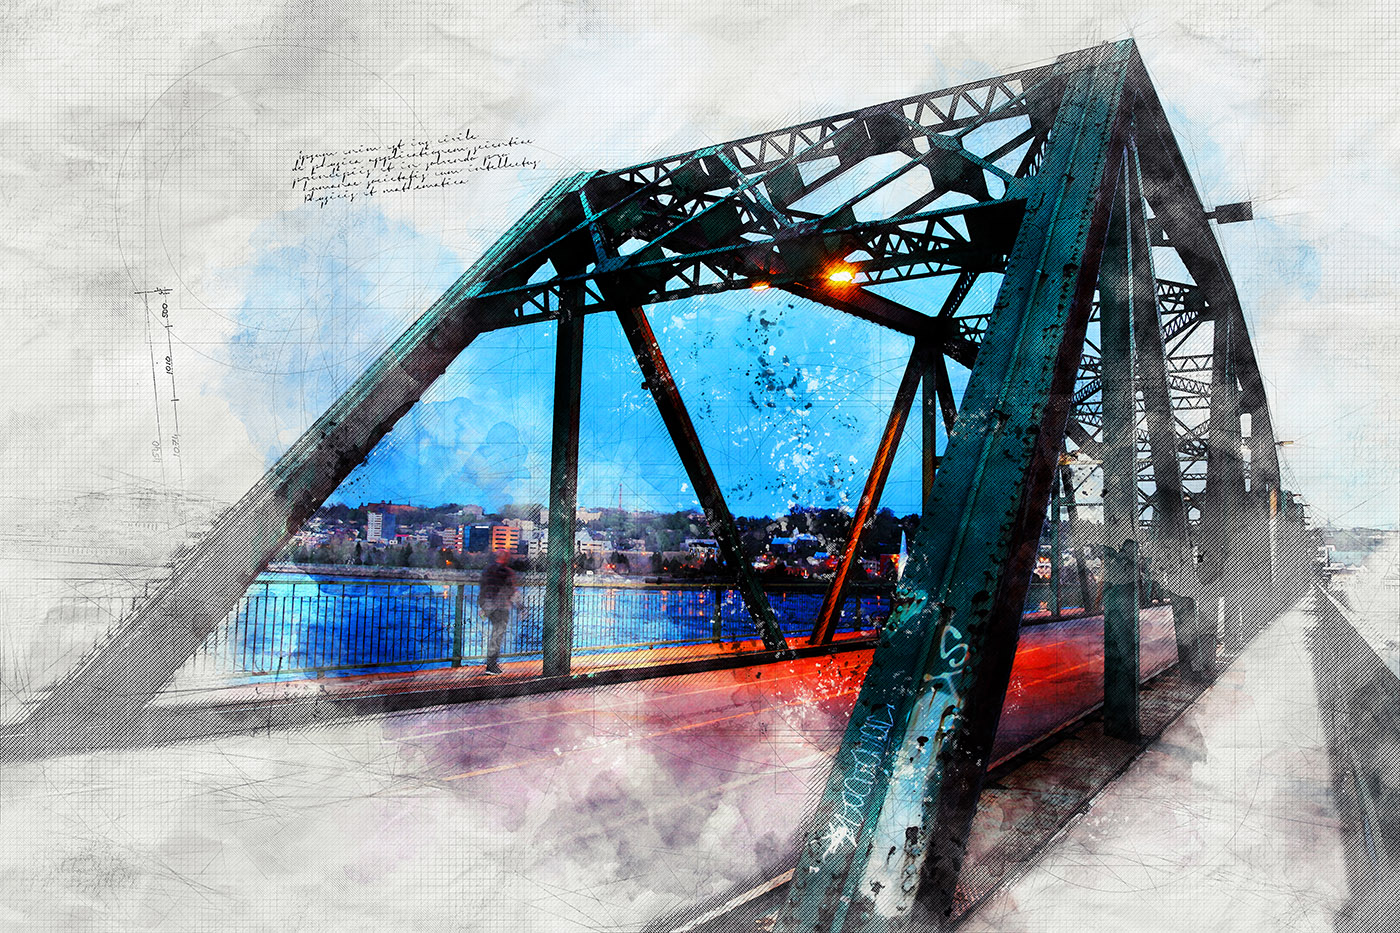 Old Bridge over the Saguenay River Sketch Image - Stock Photography